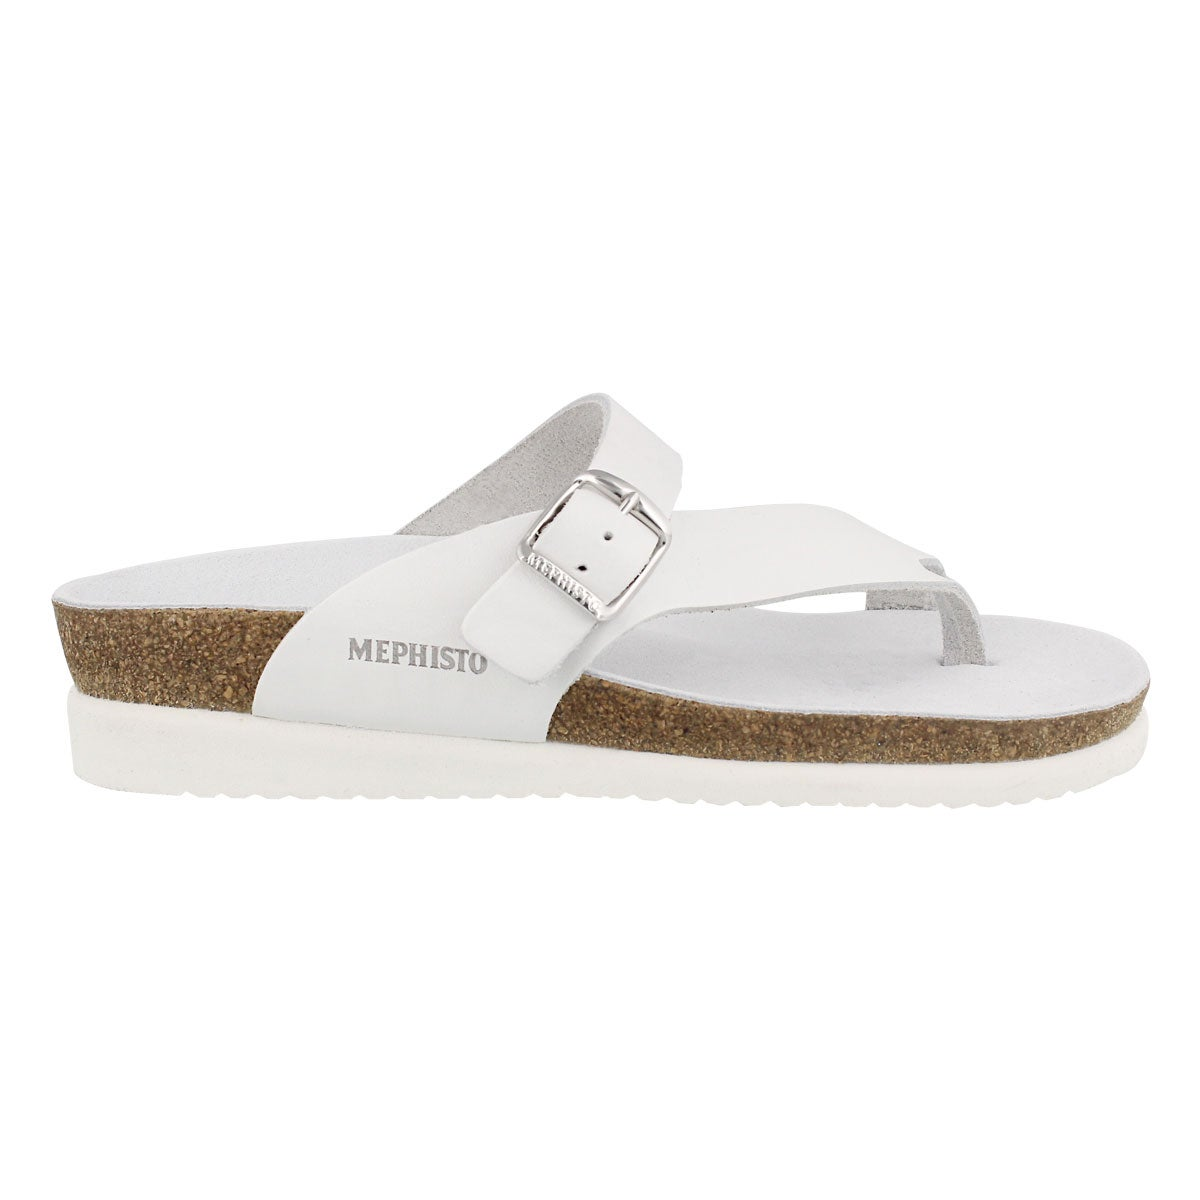 4cace0d5d7d Mephisto Women's HELEN white cork footbed tho | Softmoc.com